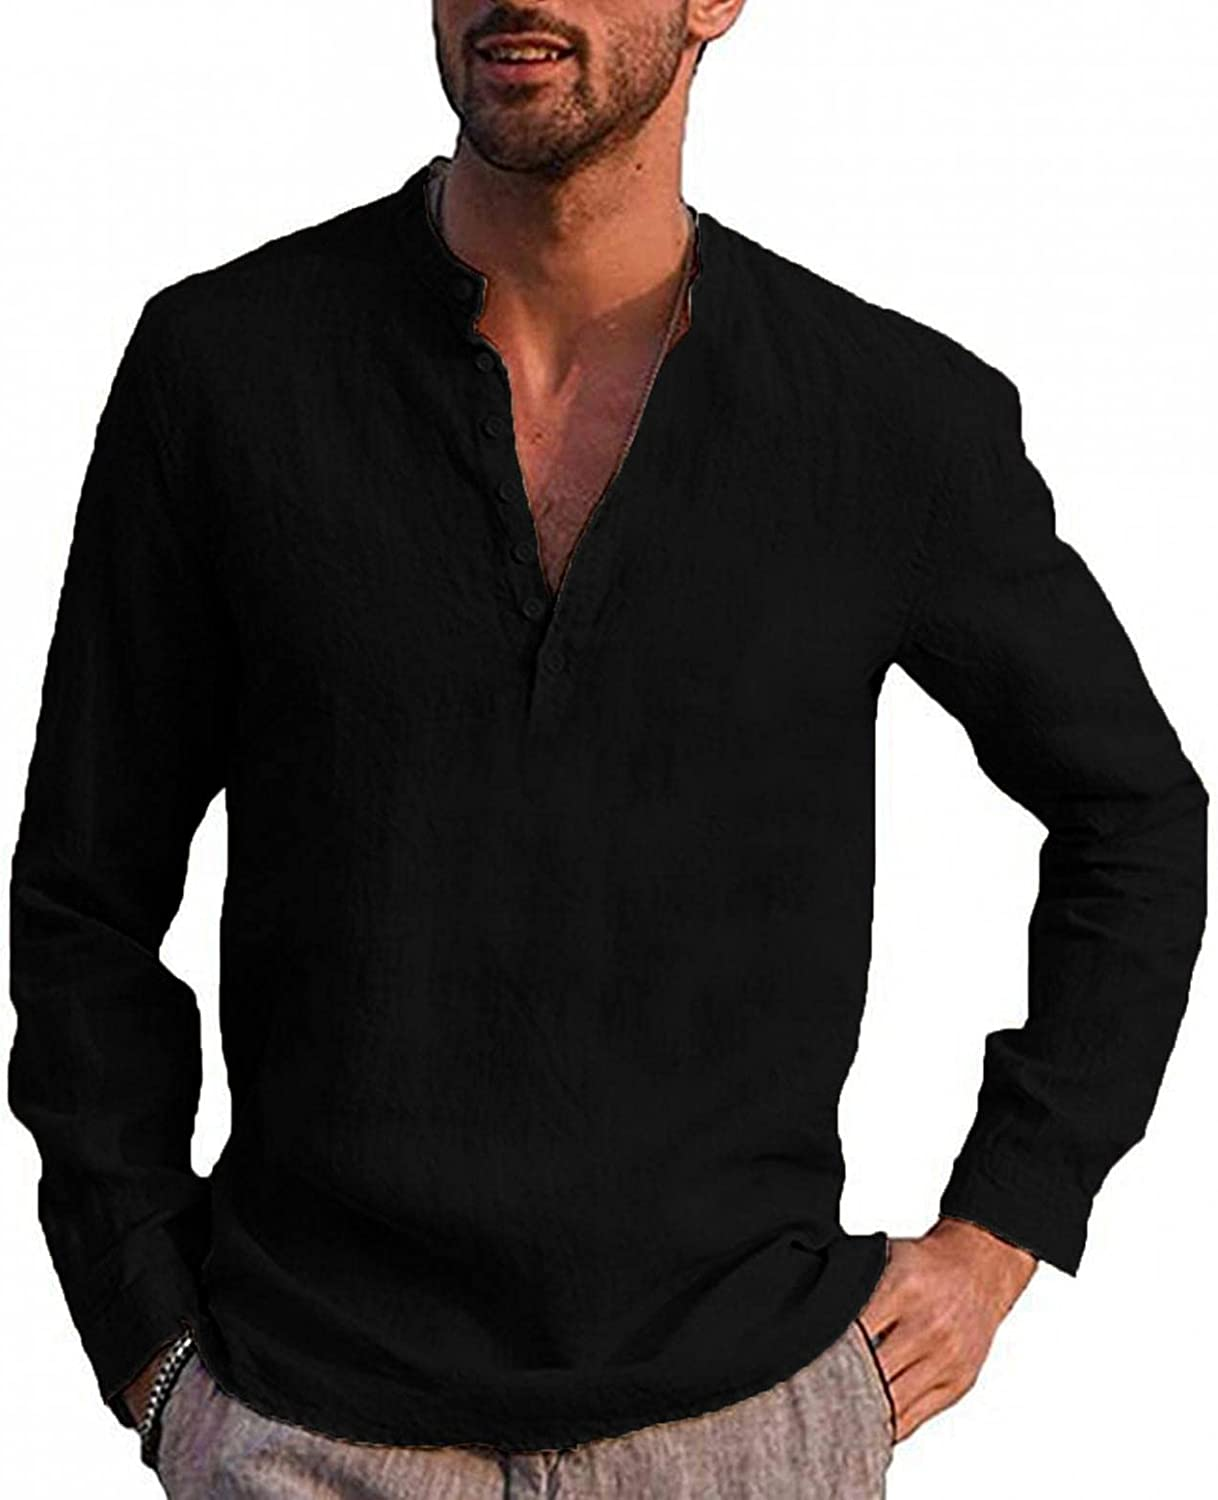 Long Sleeve Tee Shirts for Men Casual Stand Collar Solid Shirt Long Sleeve Pocket Cotton Shirt Tops